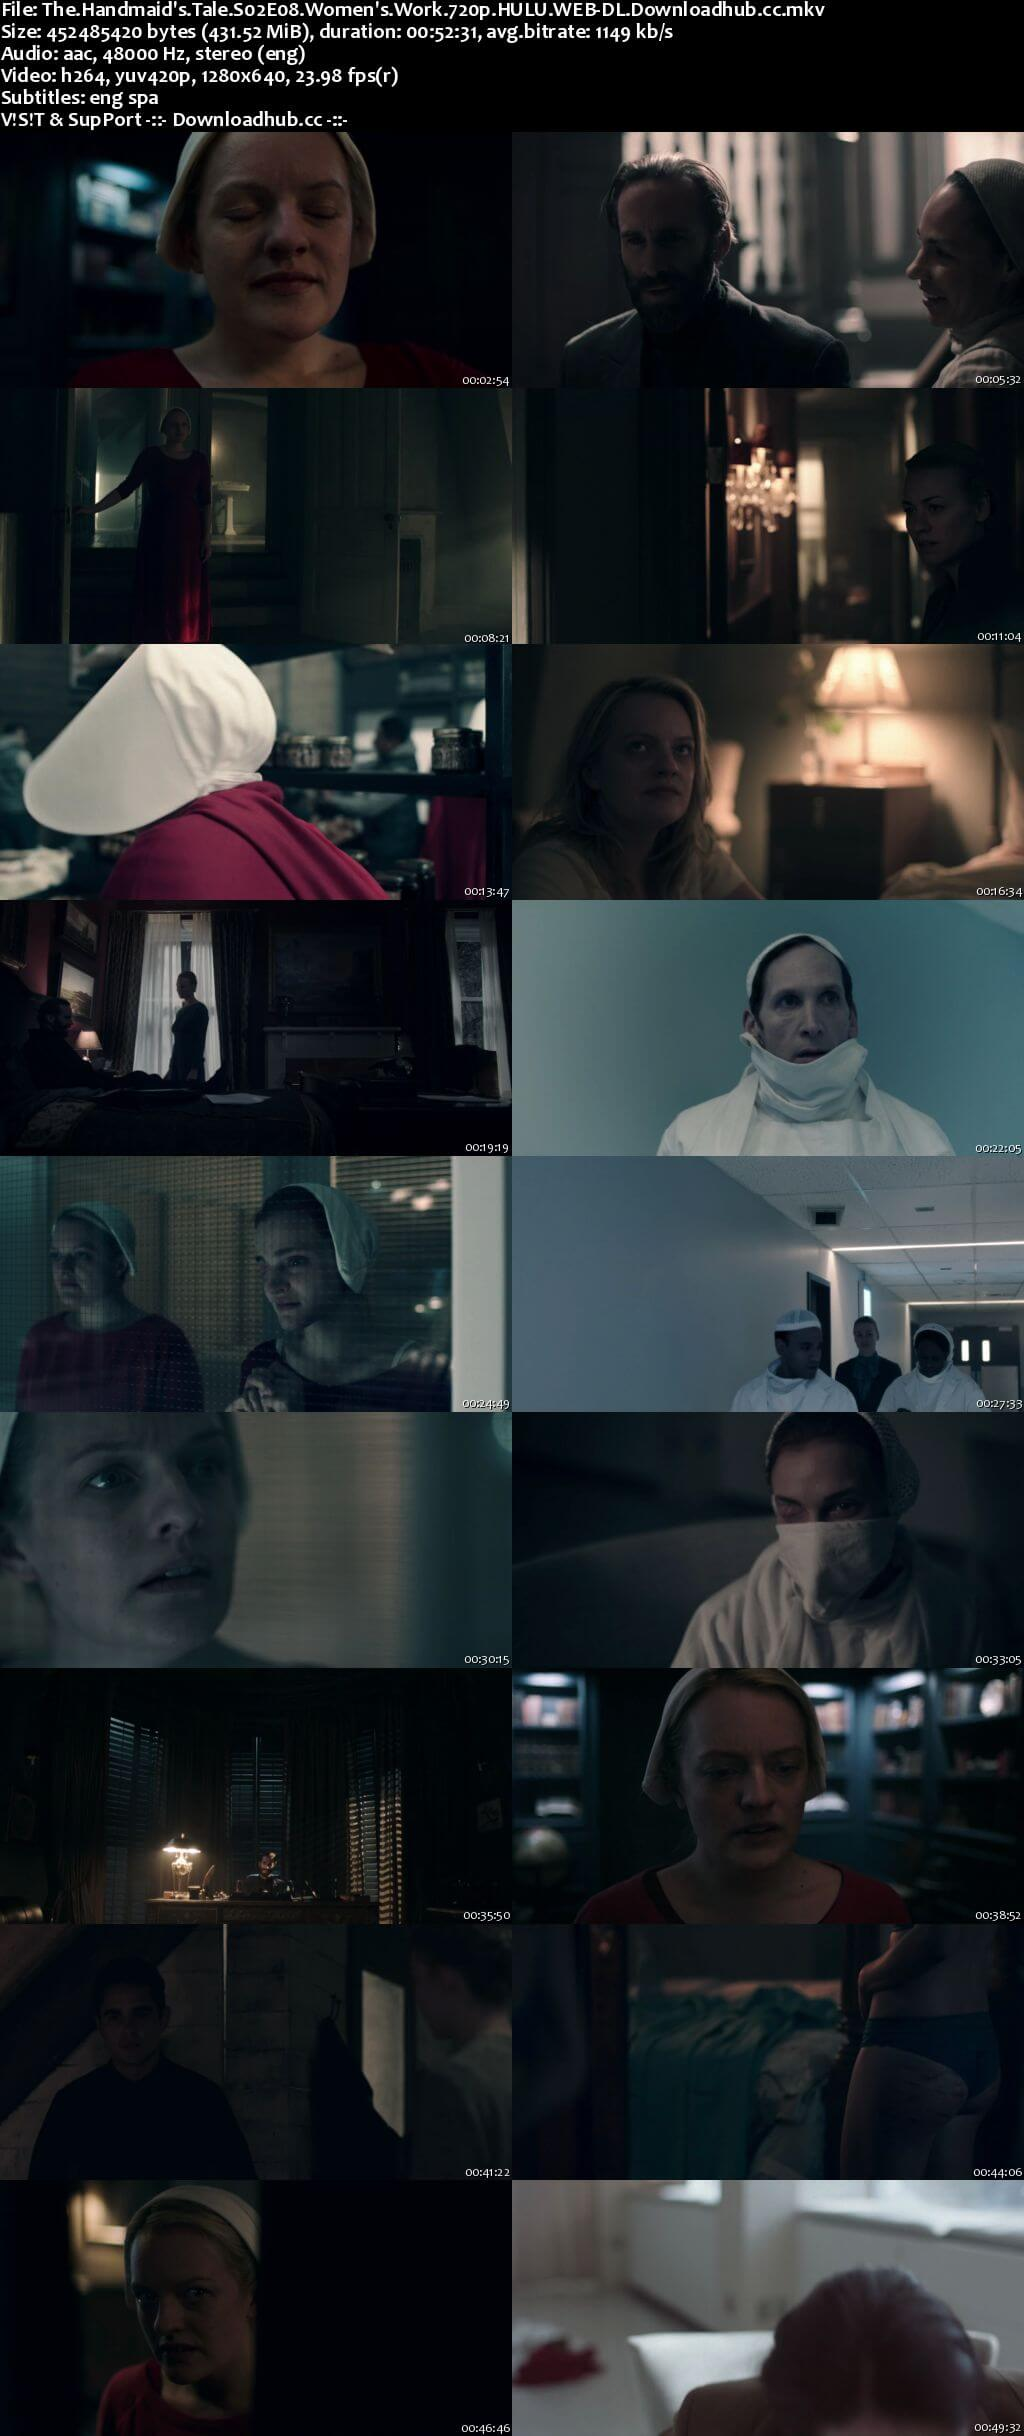 The Handmaids Tale S02E08 400MB HULU WEB-DL 720p x264 ESubs